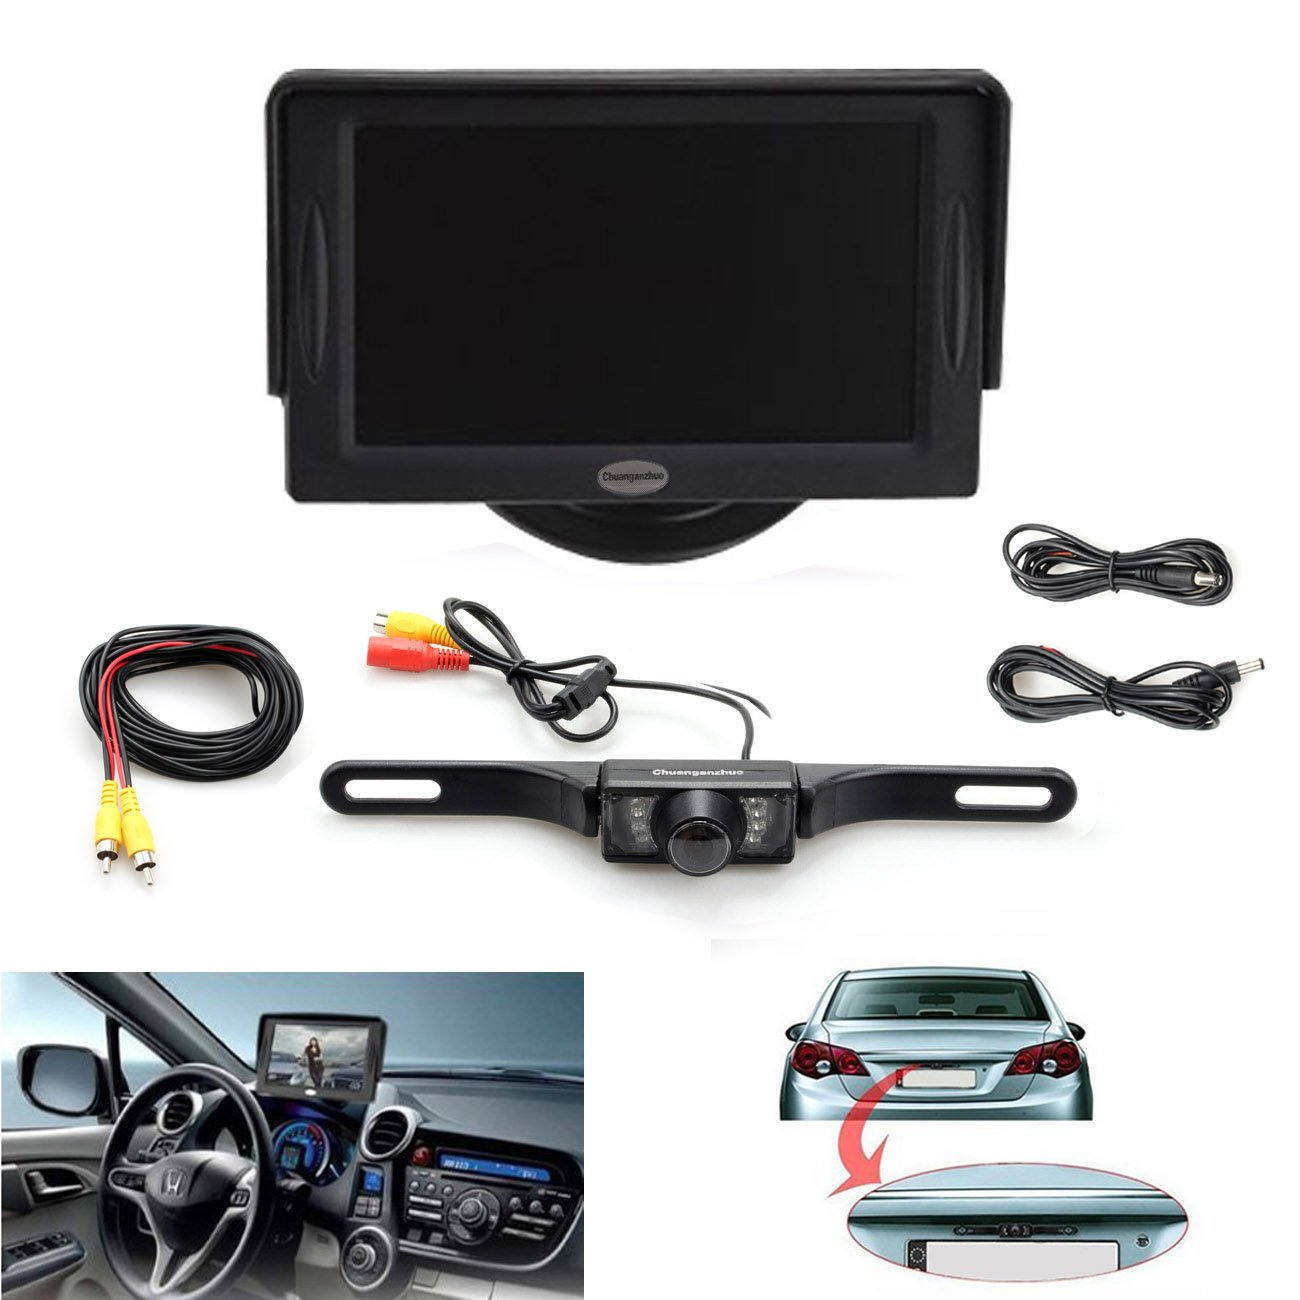 Backup Camera and Monitor Kit For Car,Universal Waterproof Rear-view License Plate Car Rear Backup Parking Camera + 4.3 TFT LCD Rear View Monitor Screen крепеж для дефлектора капота skyline sl hp 151